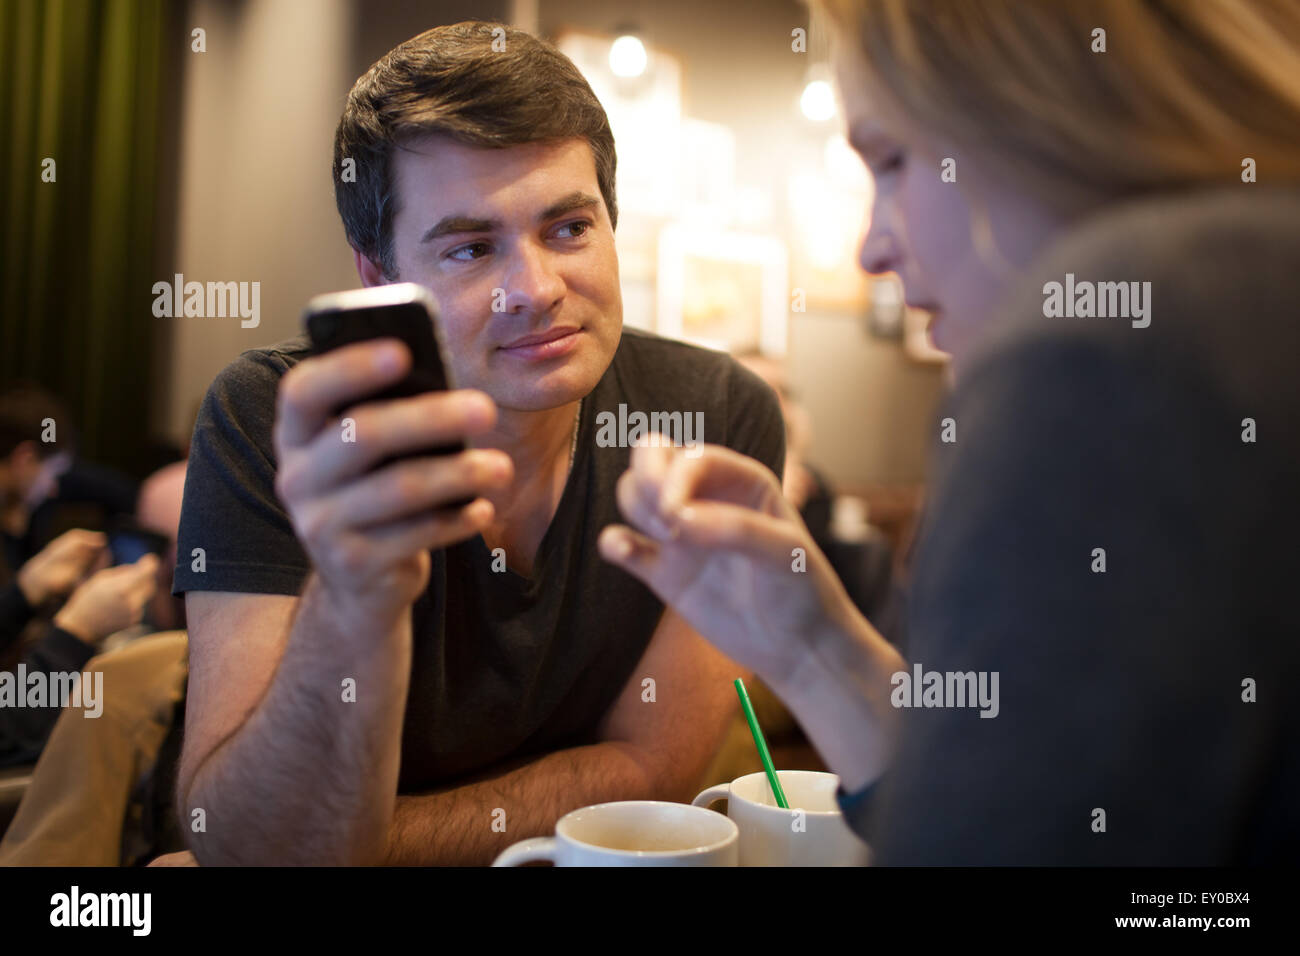 Man using mobile phone during meeting with girl in cafe - Stock Image